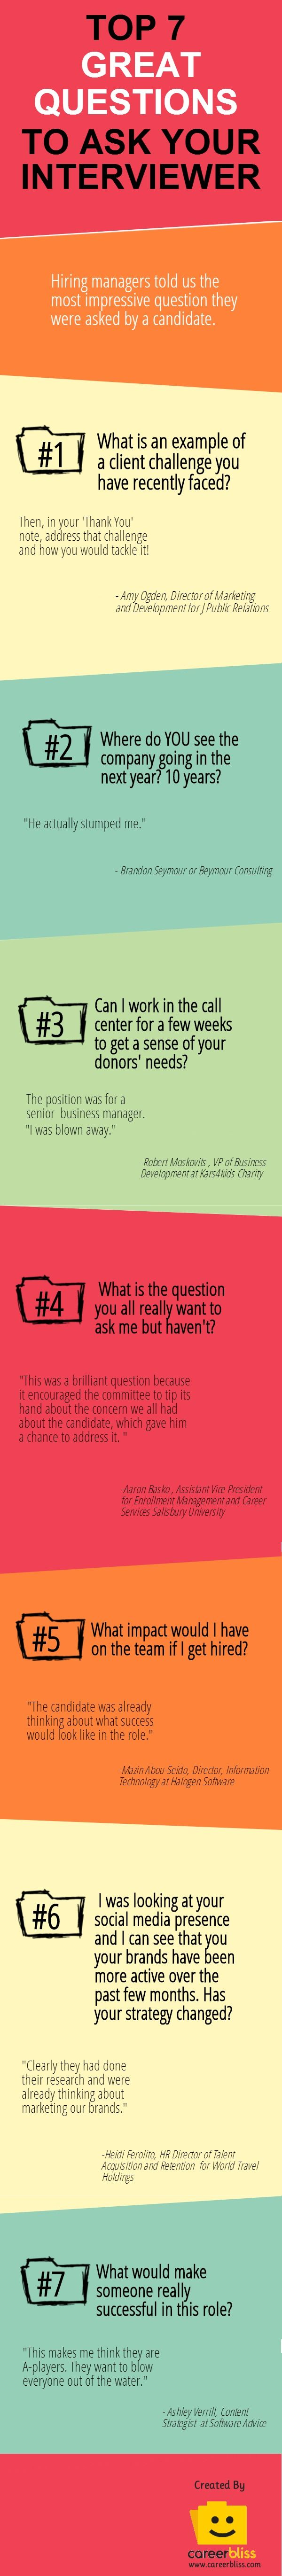 Seven great questions to ask your interviewer.